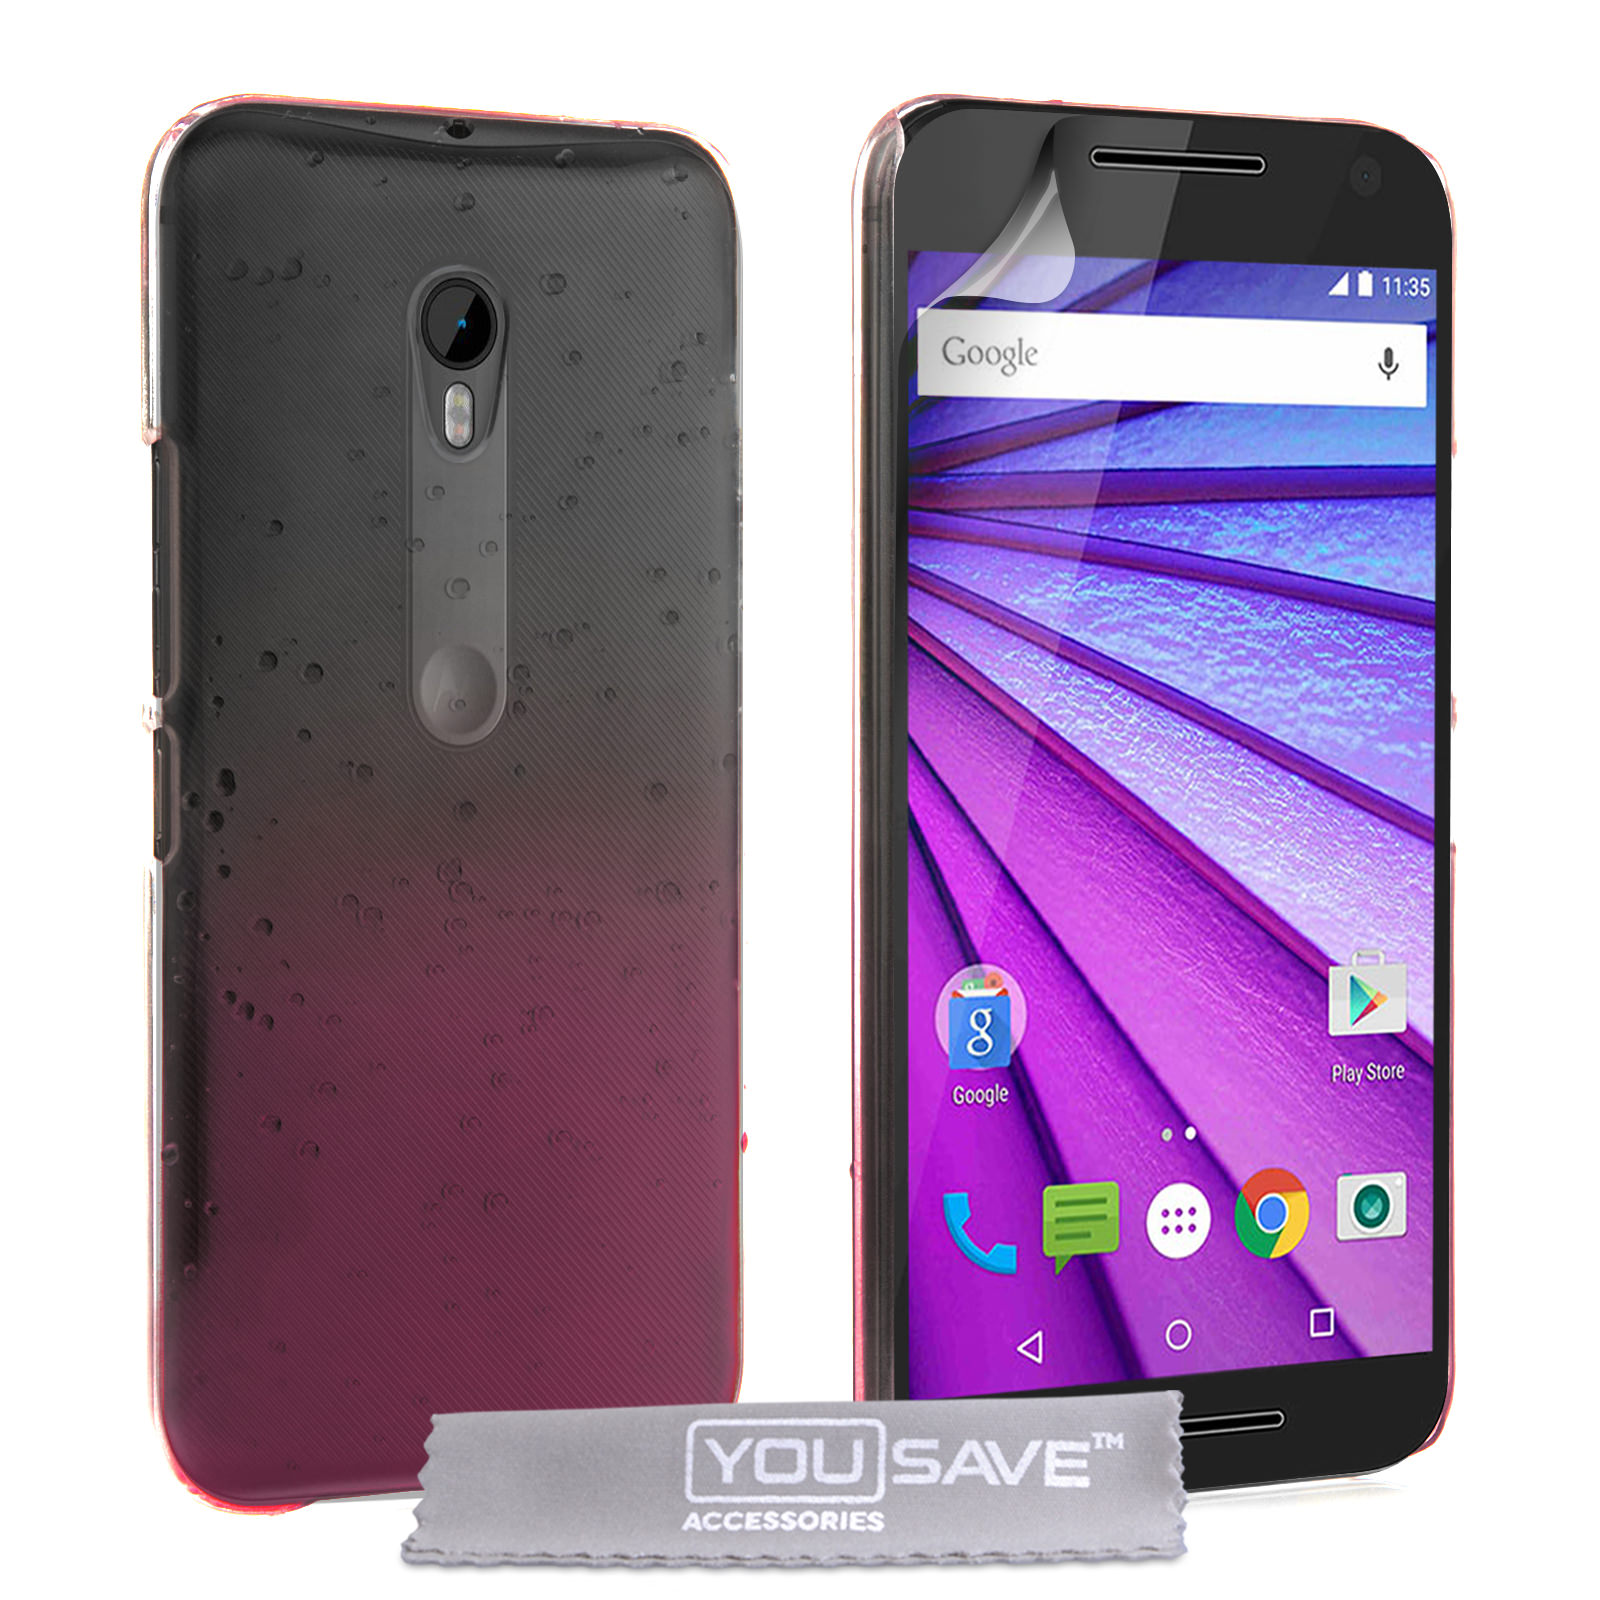 Yousave Accessories Motorola Moto G 3rd Gen Raindrop Hard Case - Pink / Clear